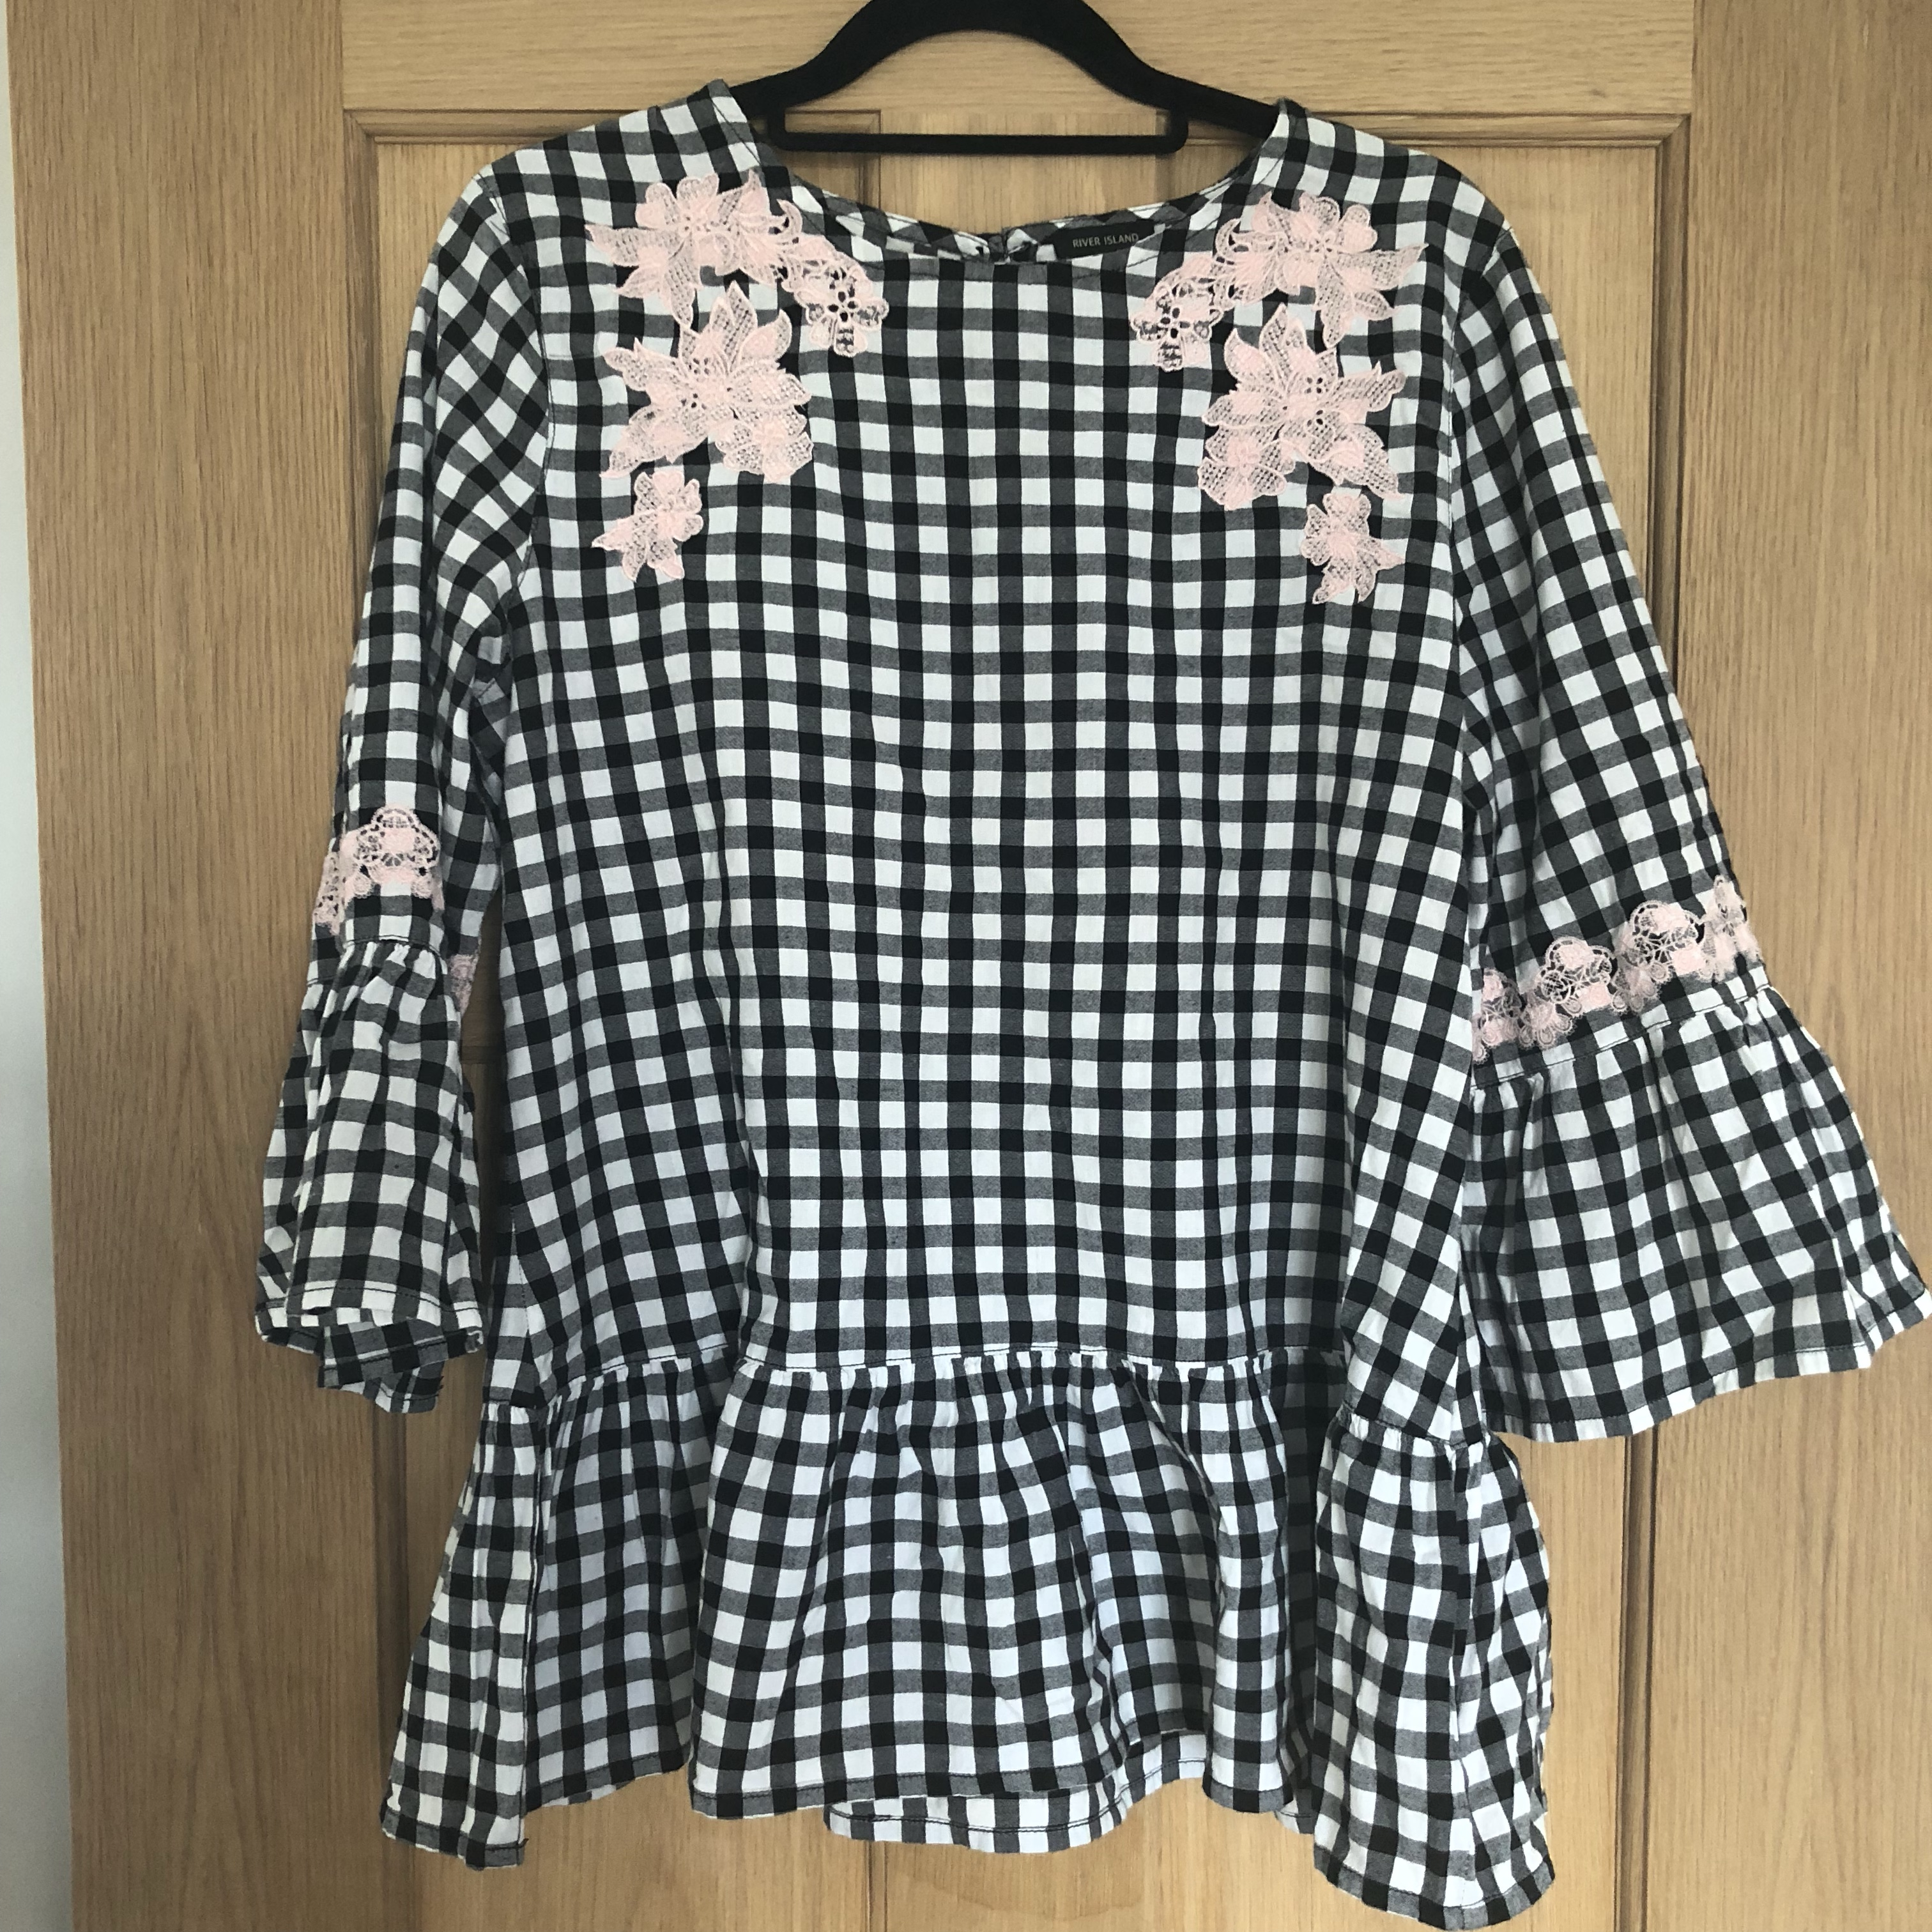 4c97cc49ad5 River Island black/white gingham smock top with... - Depop